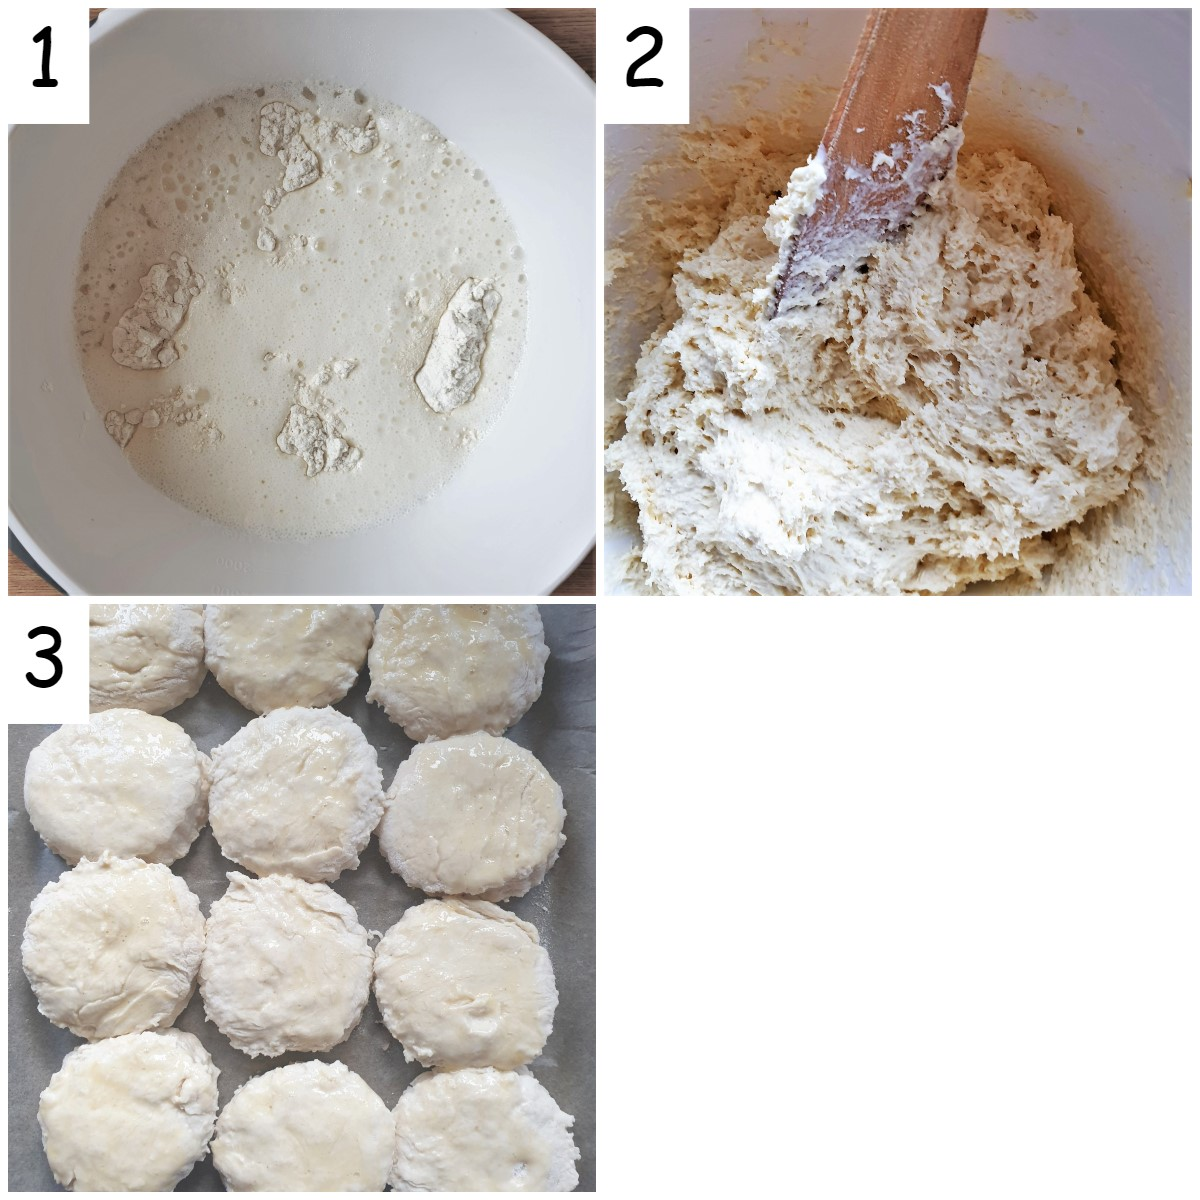 Collage of 3 images showing steps for mixing lemonade scones.